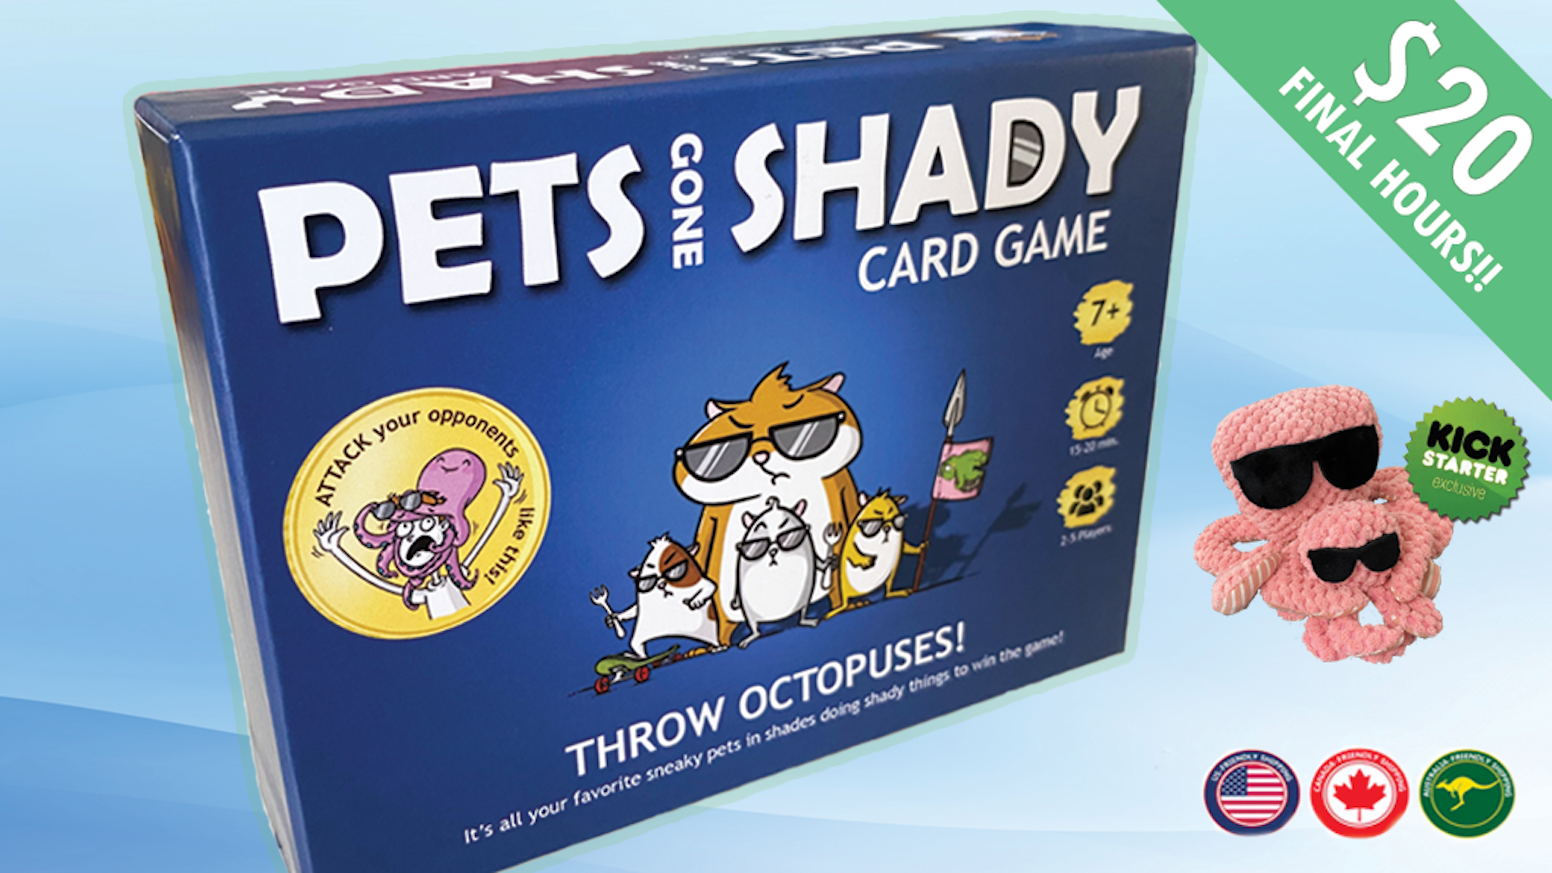 A card game that lets you throw octopuses, deal with naked turtles and avoid hangry hamsters!